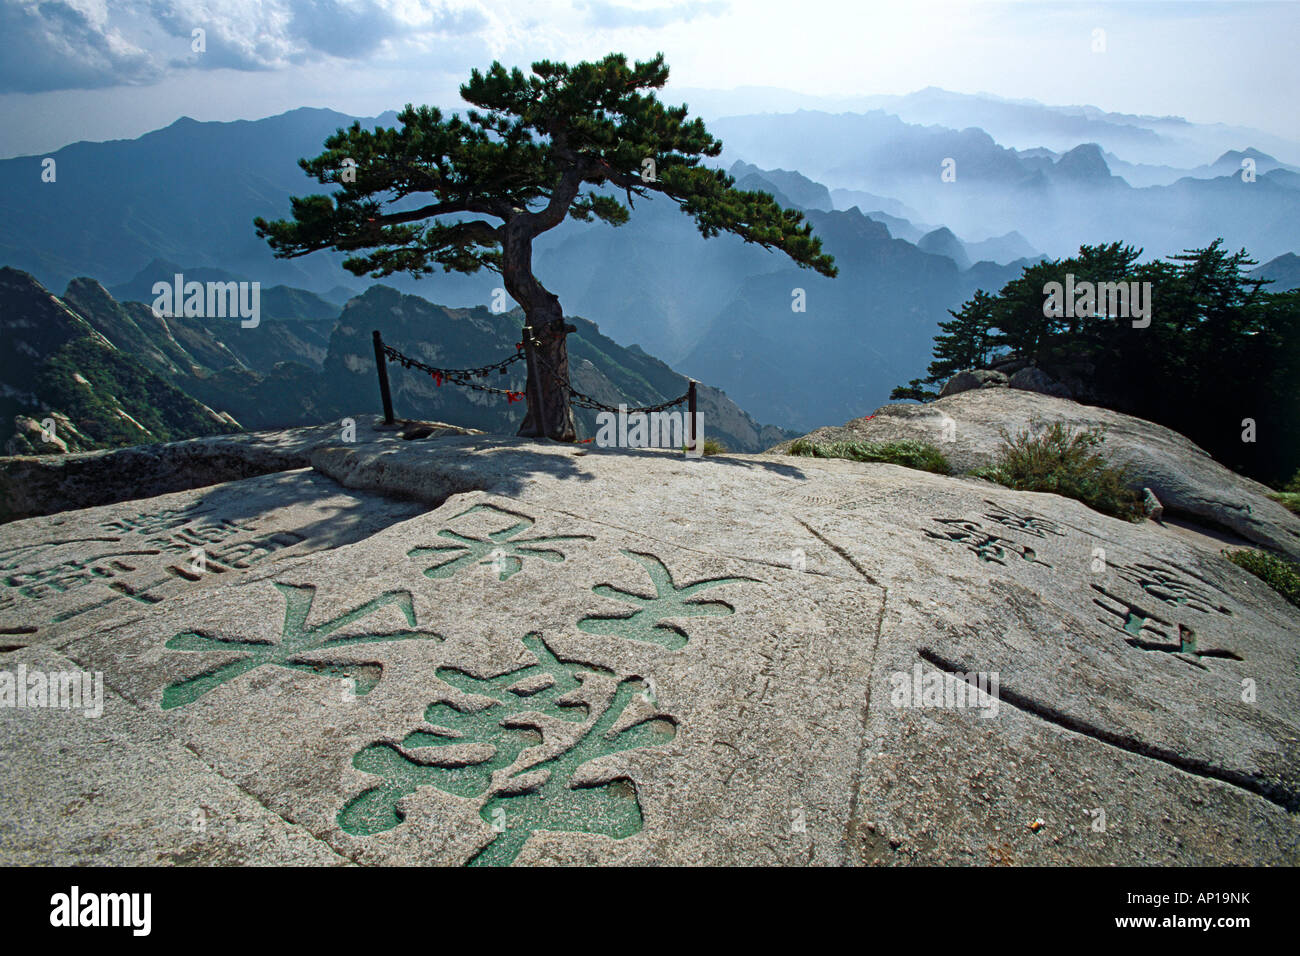 Chinese characters engraved in stone, South Peak, Hua Shan, Shaanxi province, Taoist mountain, China, Asia - Stock Image